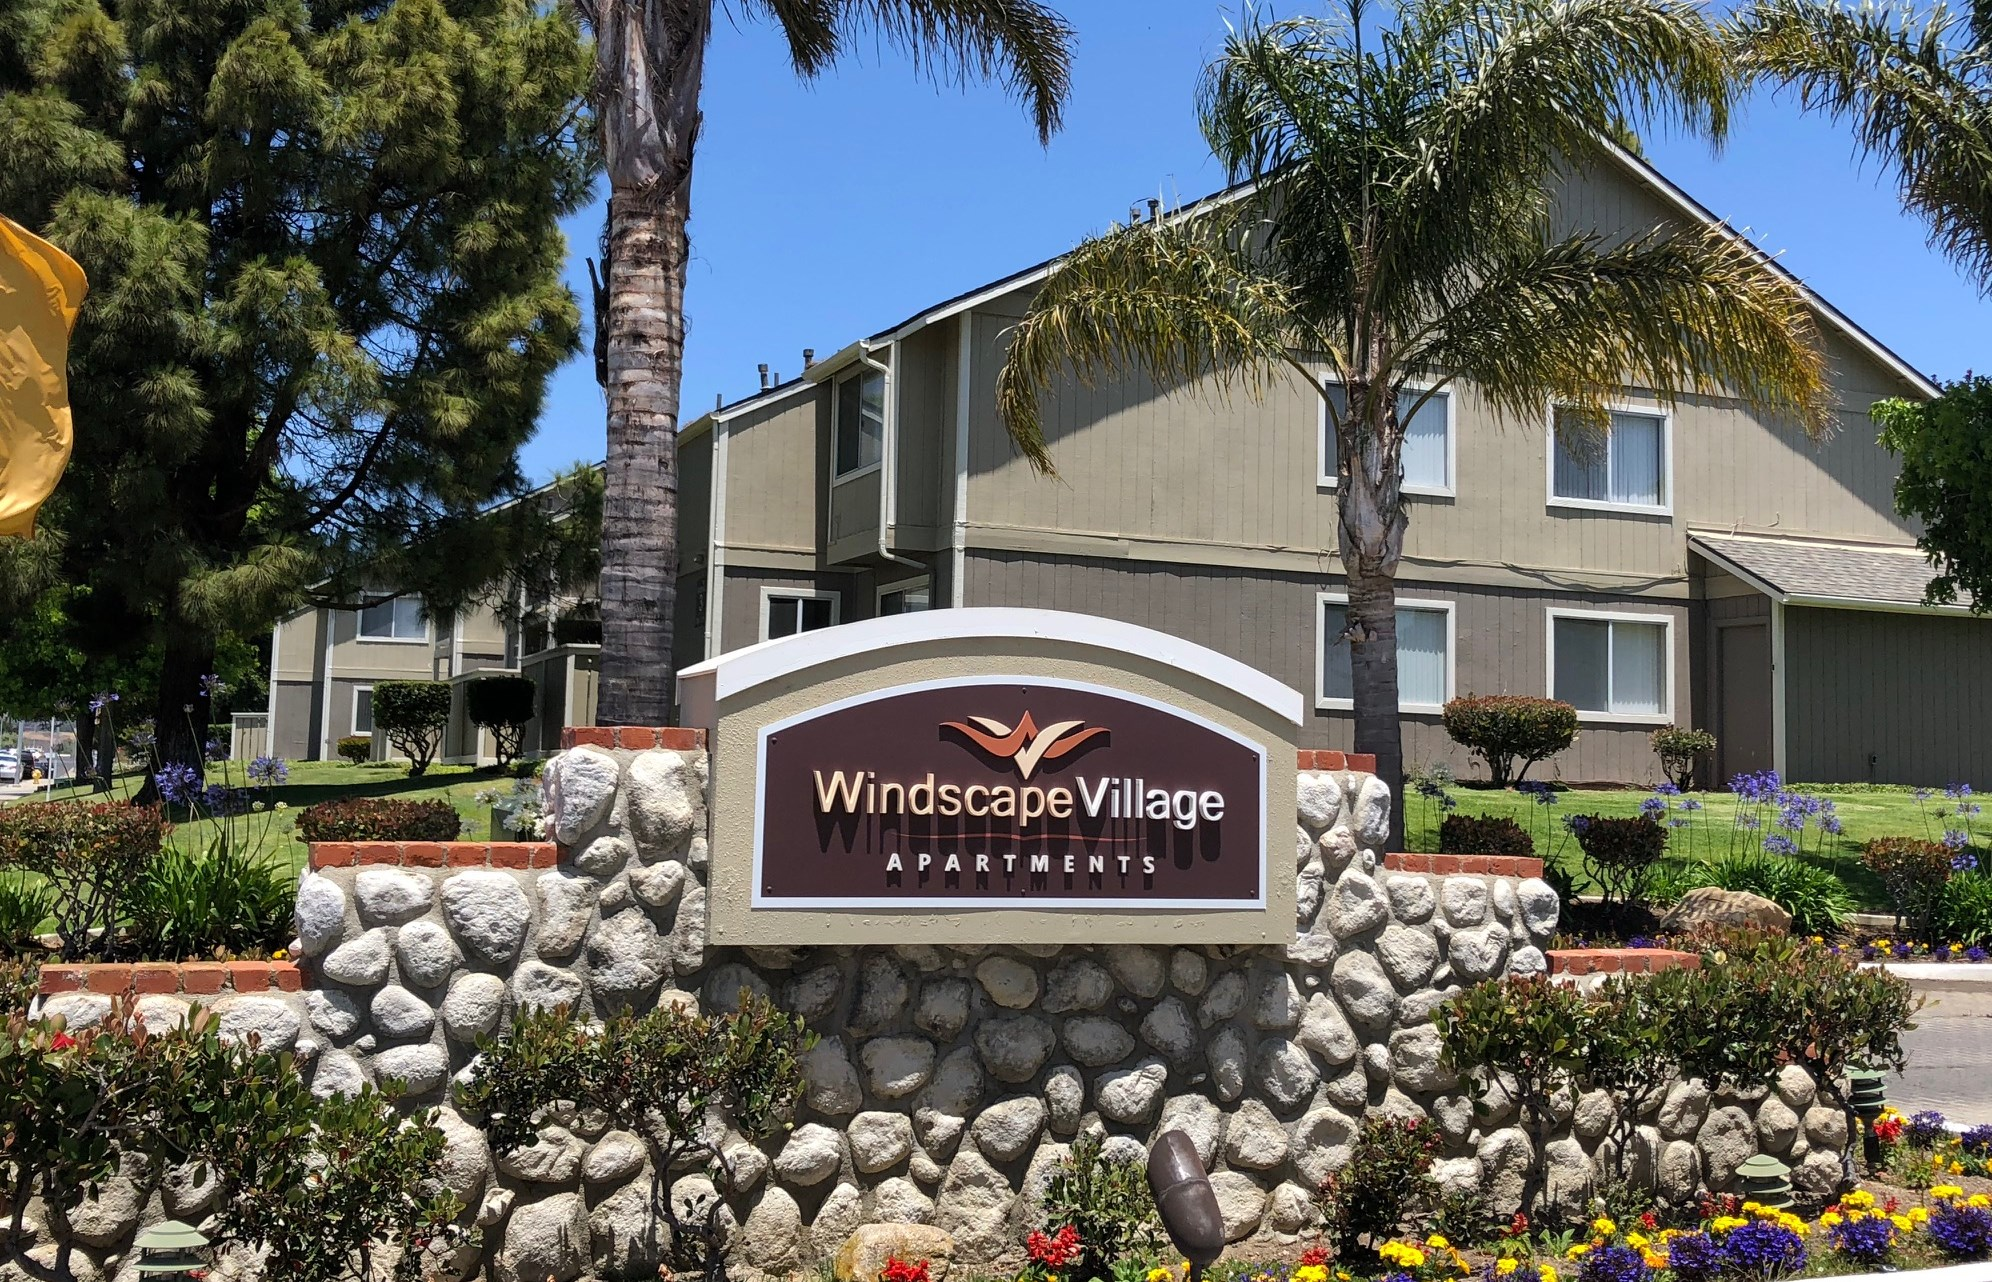 Windscape Village Apartments